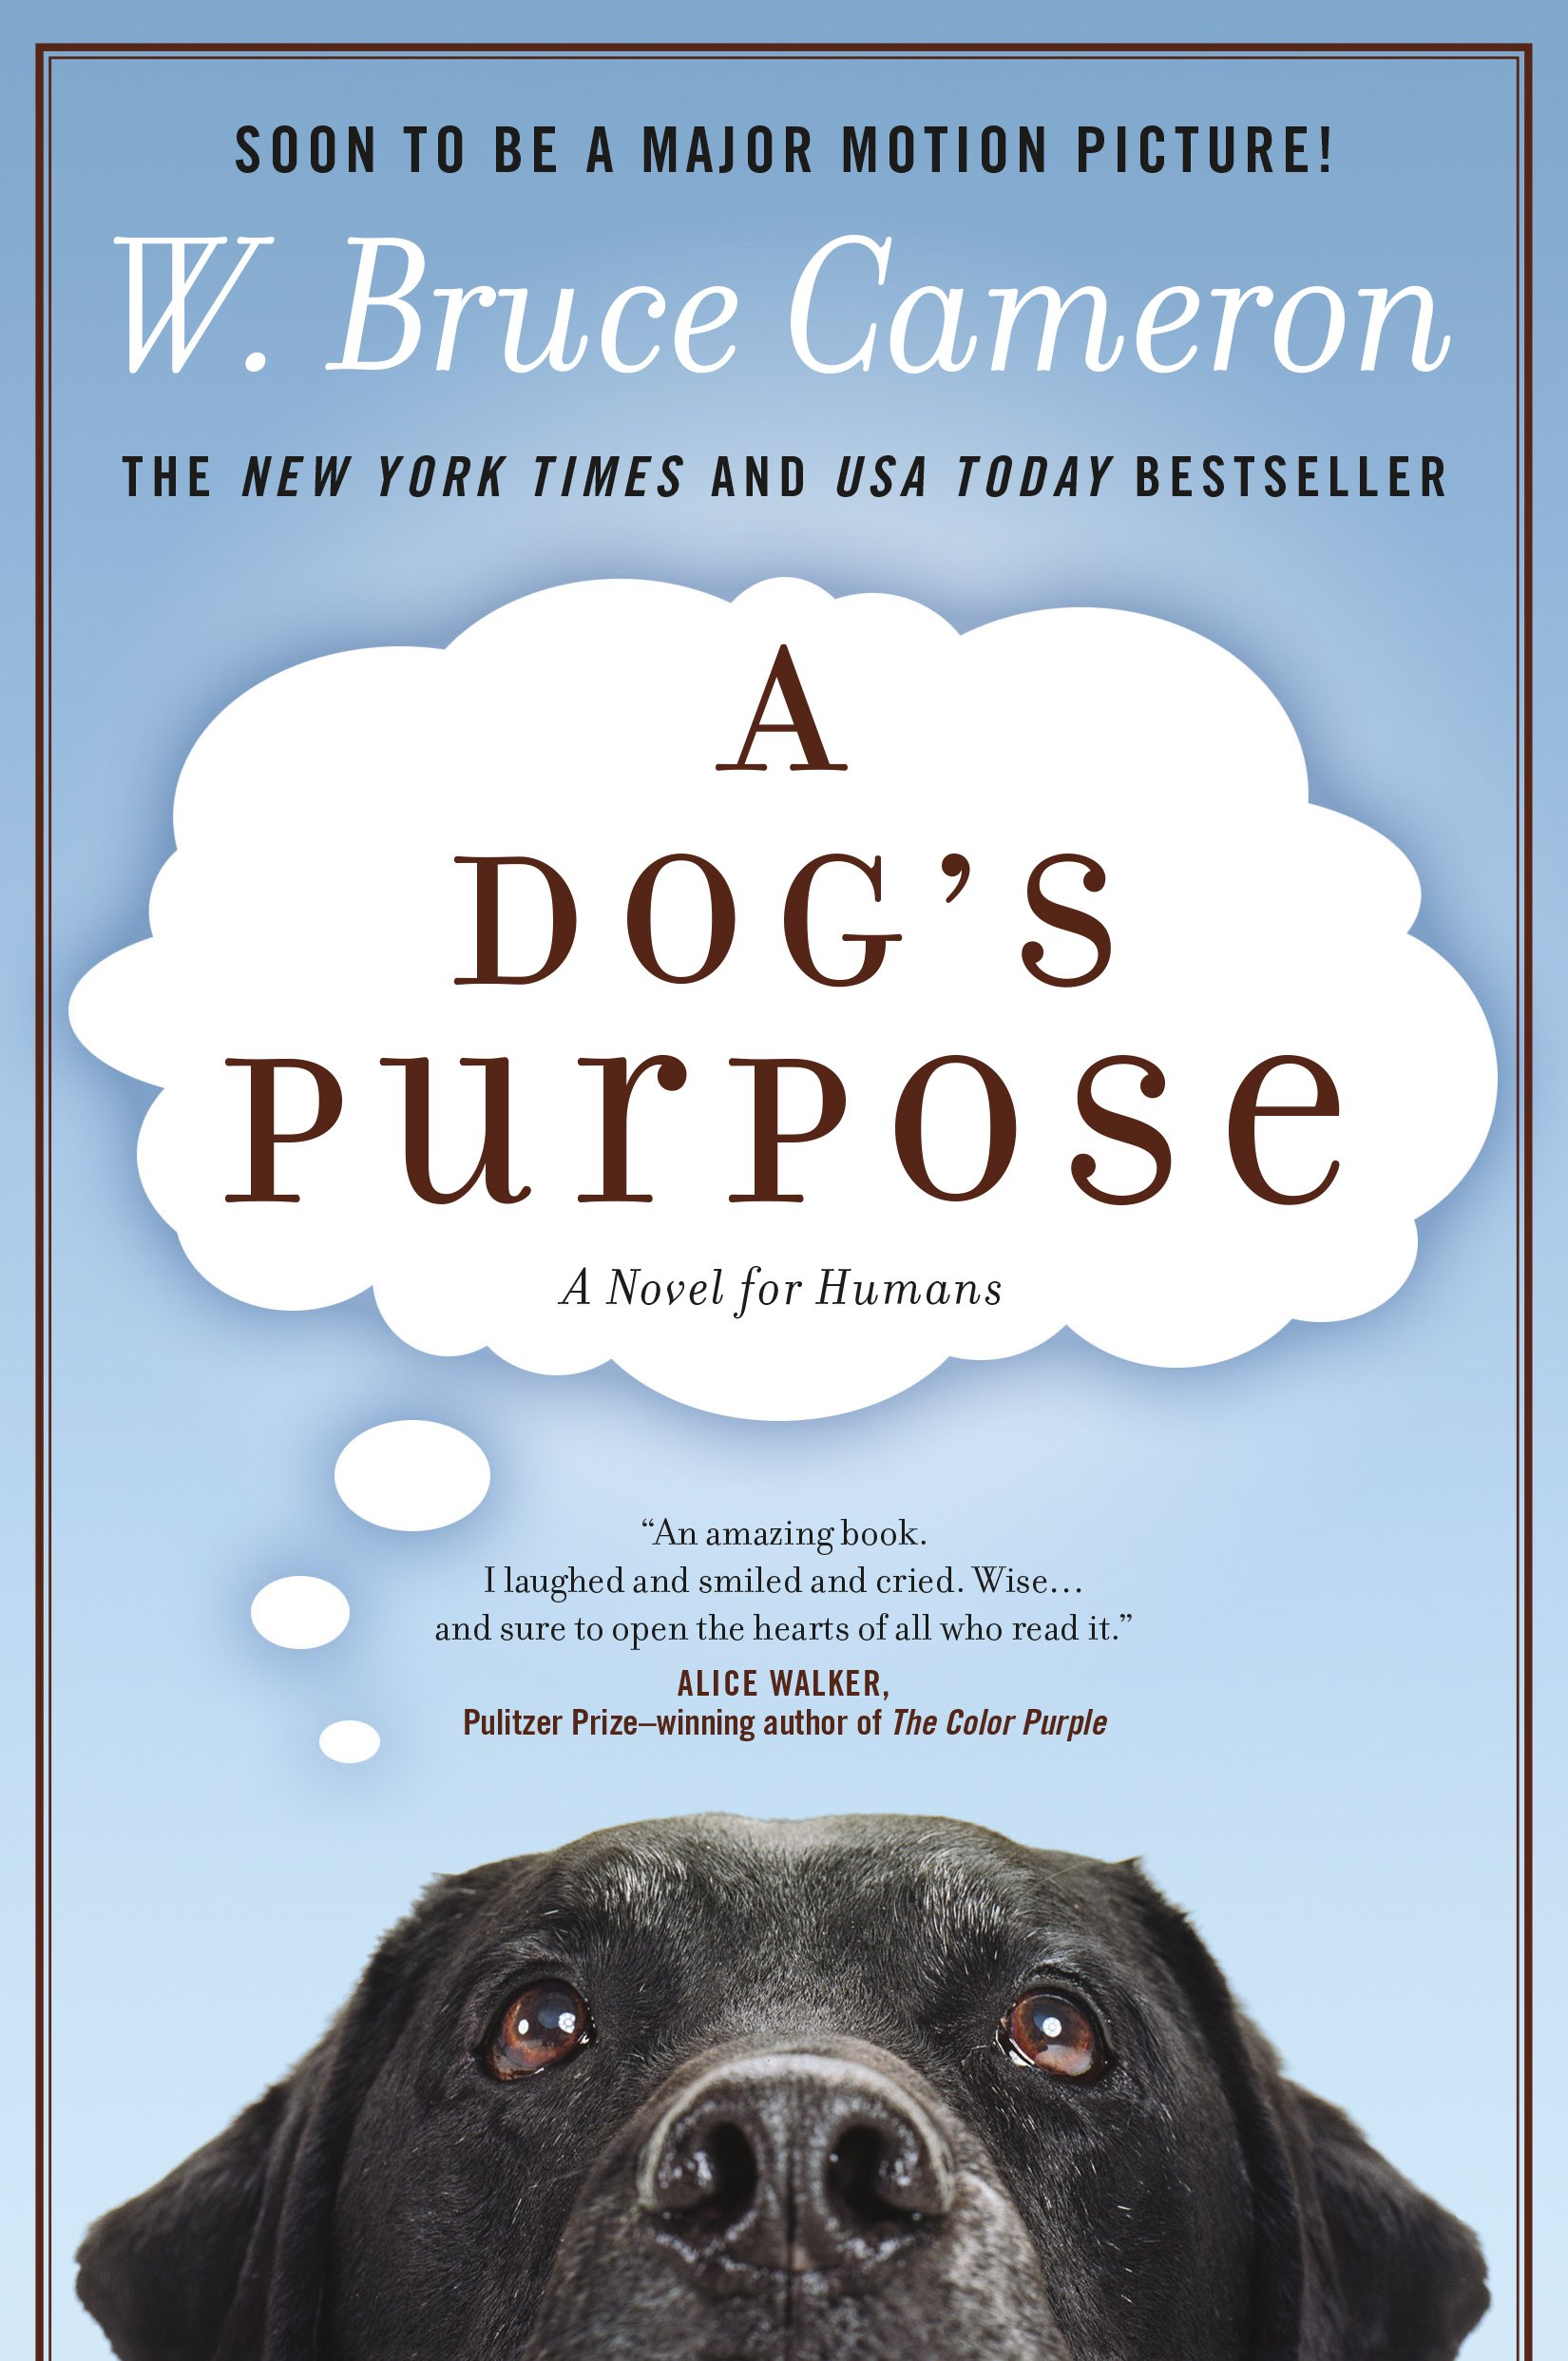 Amazon A Dogs Purpose A Novel for Humans W